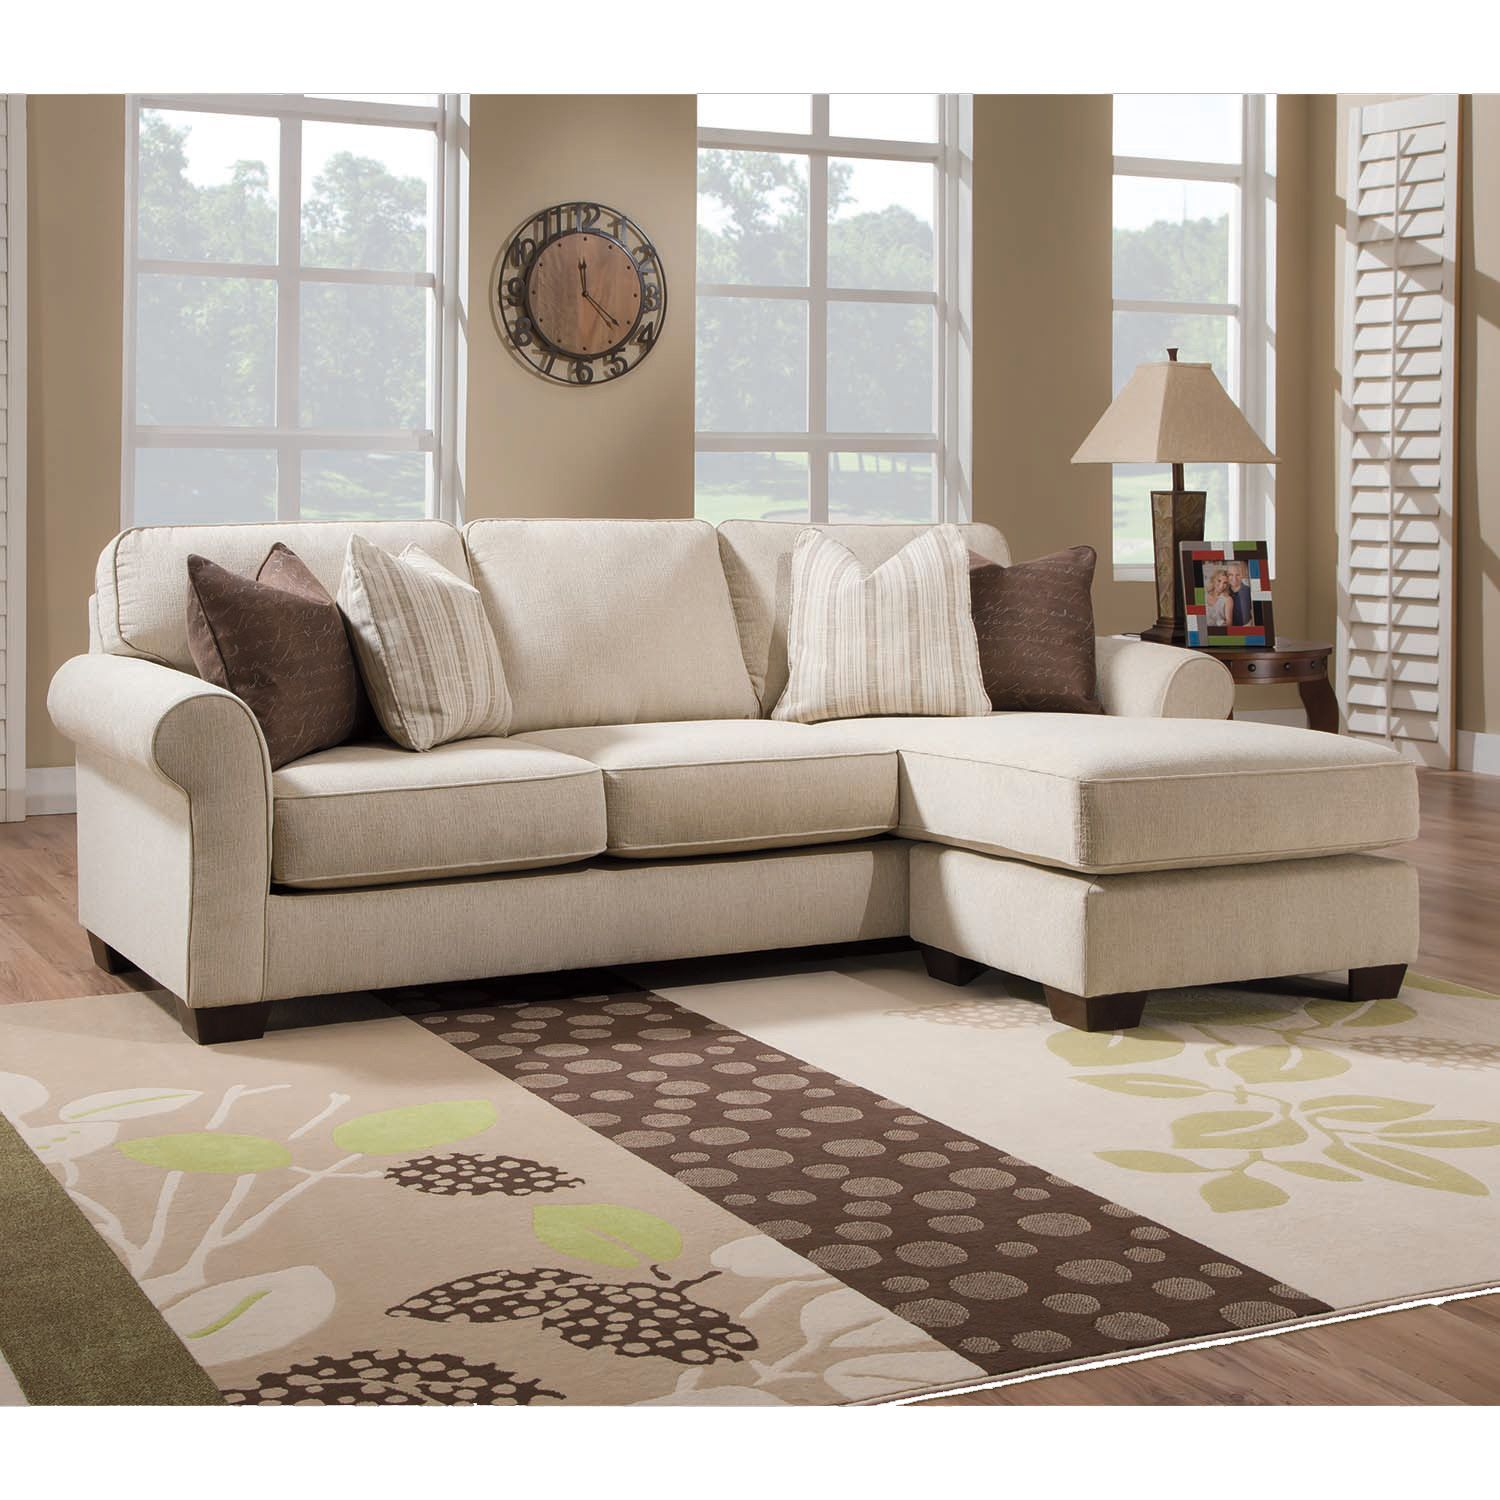 berkline callisburgh reviews in furniture sofa chaise nilsen dimensions